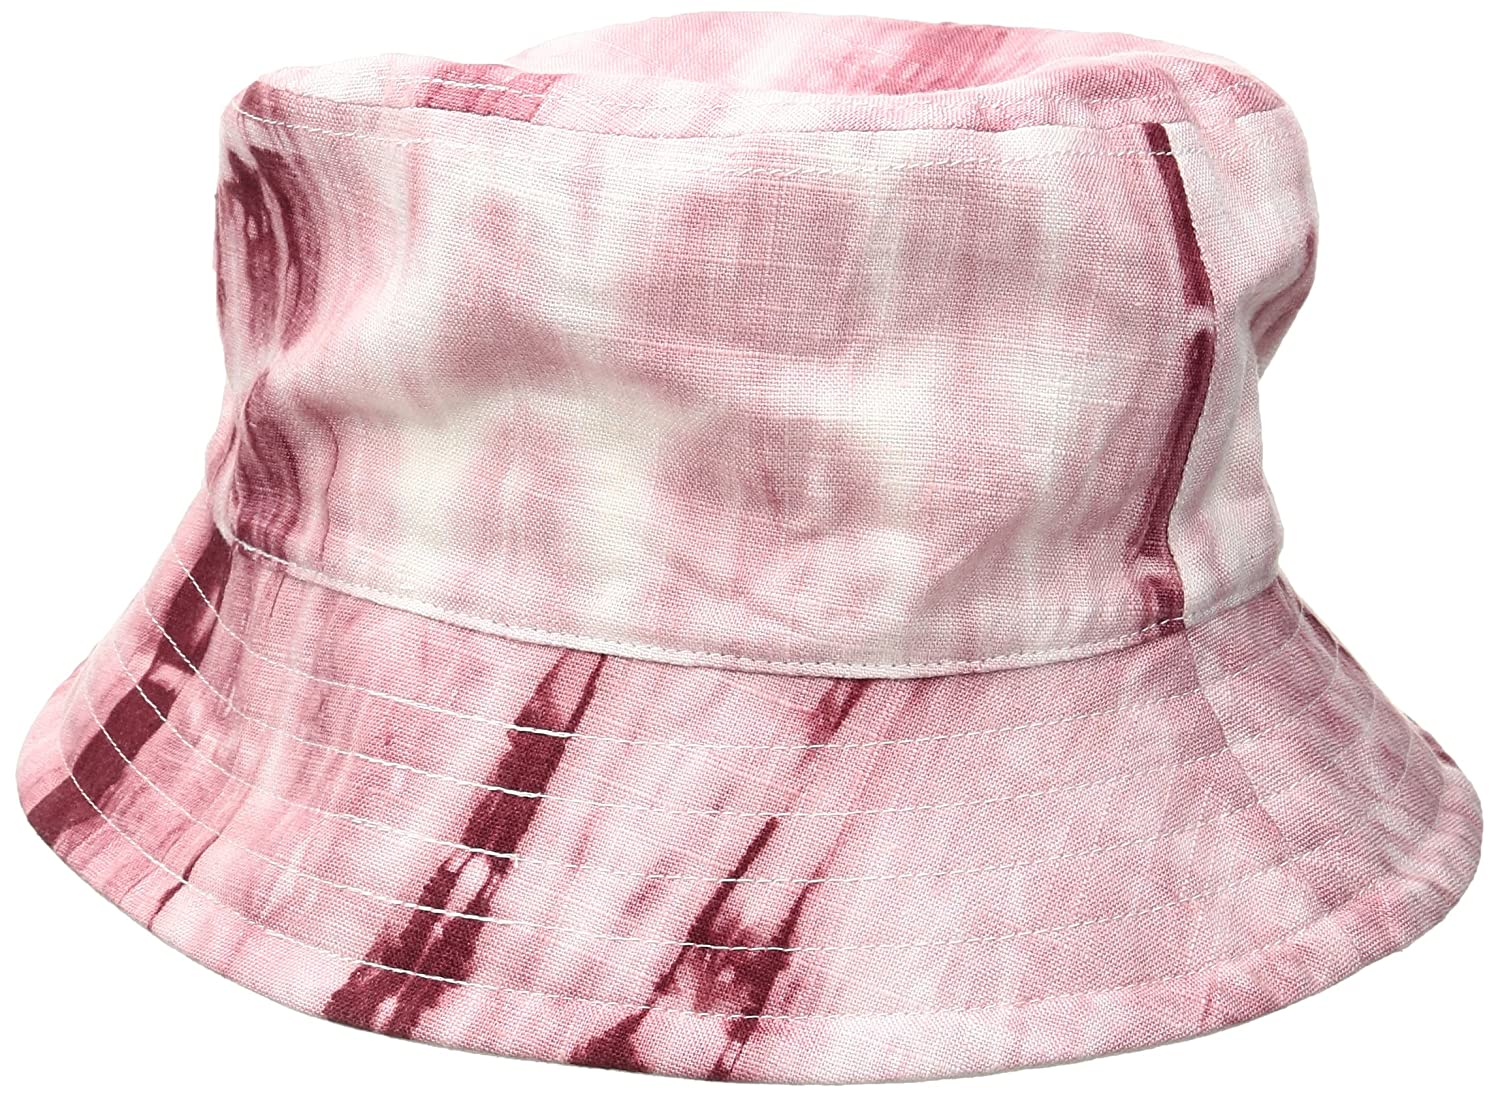 99034fd22 Amazon.com : Outdoor Research Women's Trista Bucket, White, Large ...